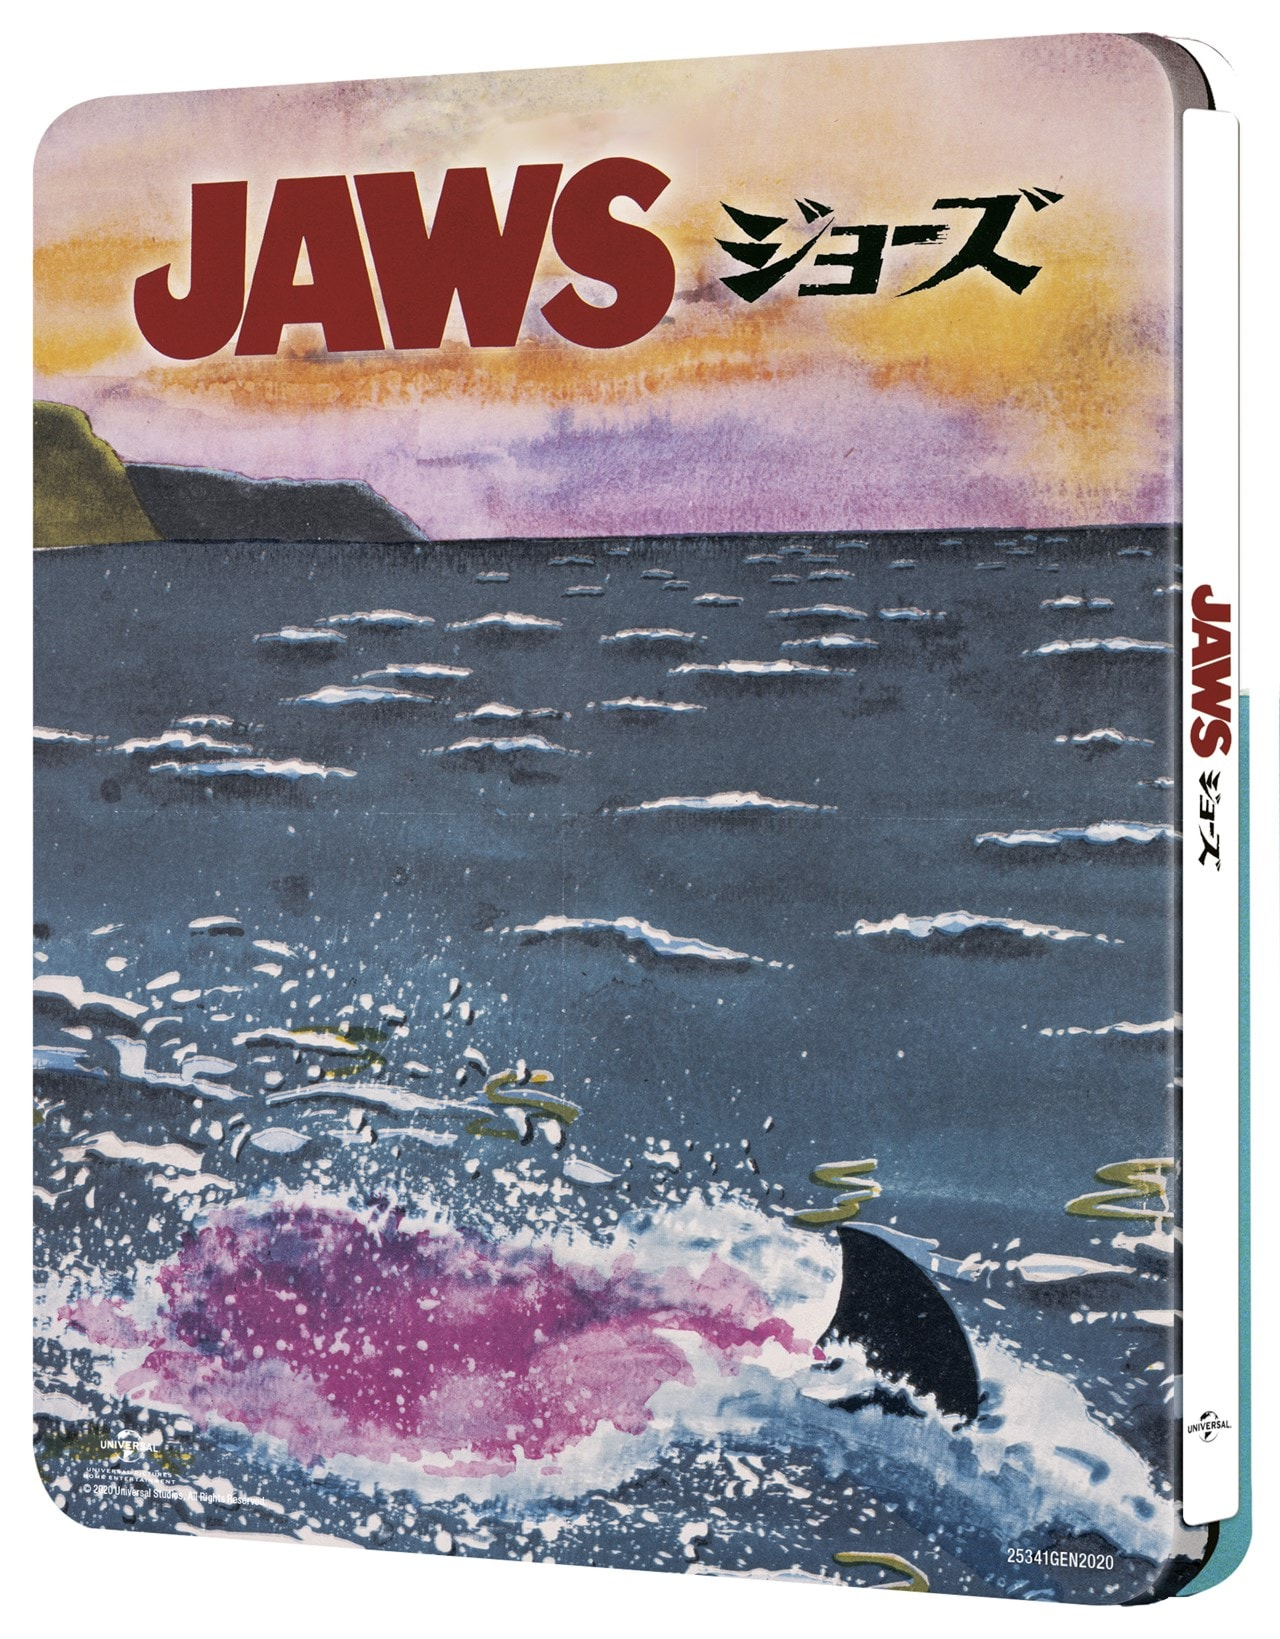 Jaws (hmv Exclusive) - Japanese Artwork Series #1 Limited Edition Steelbook - 2